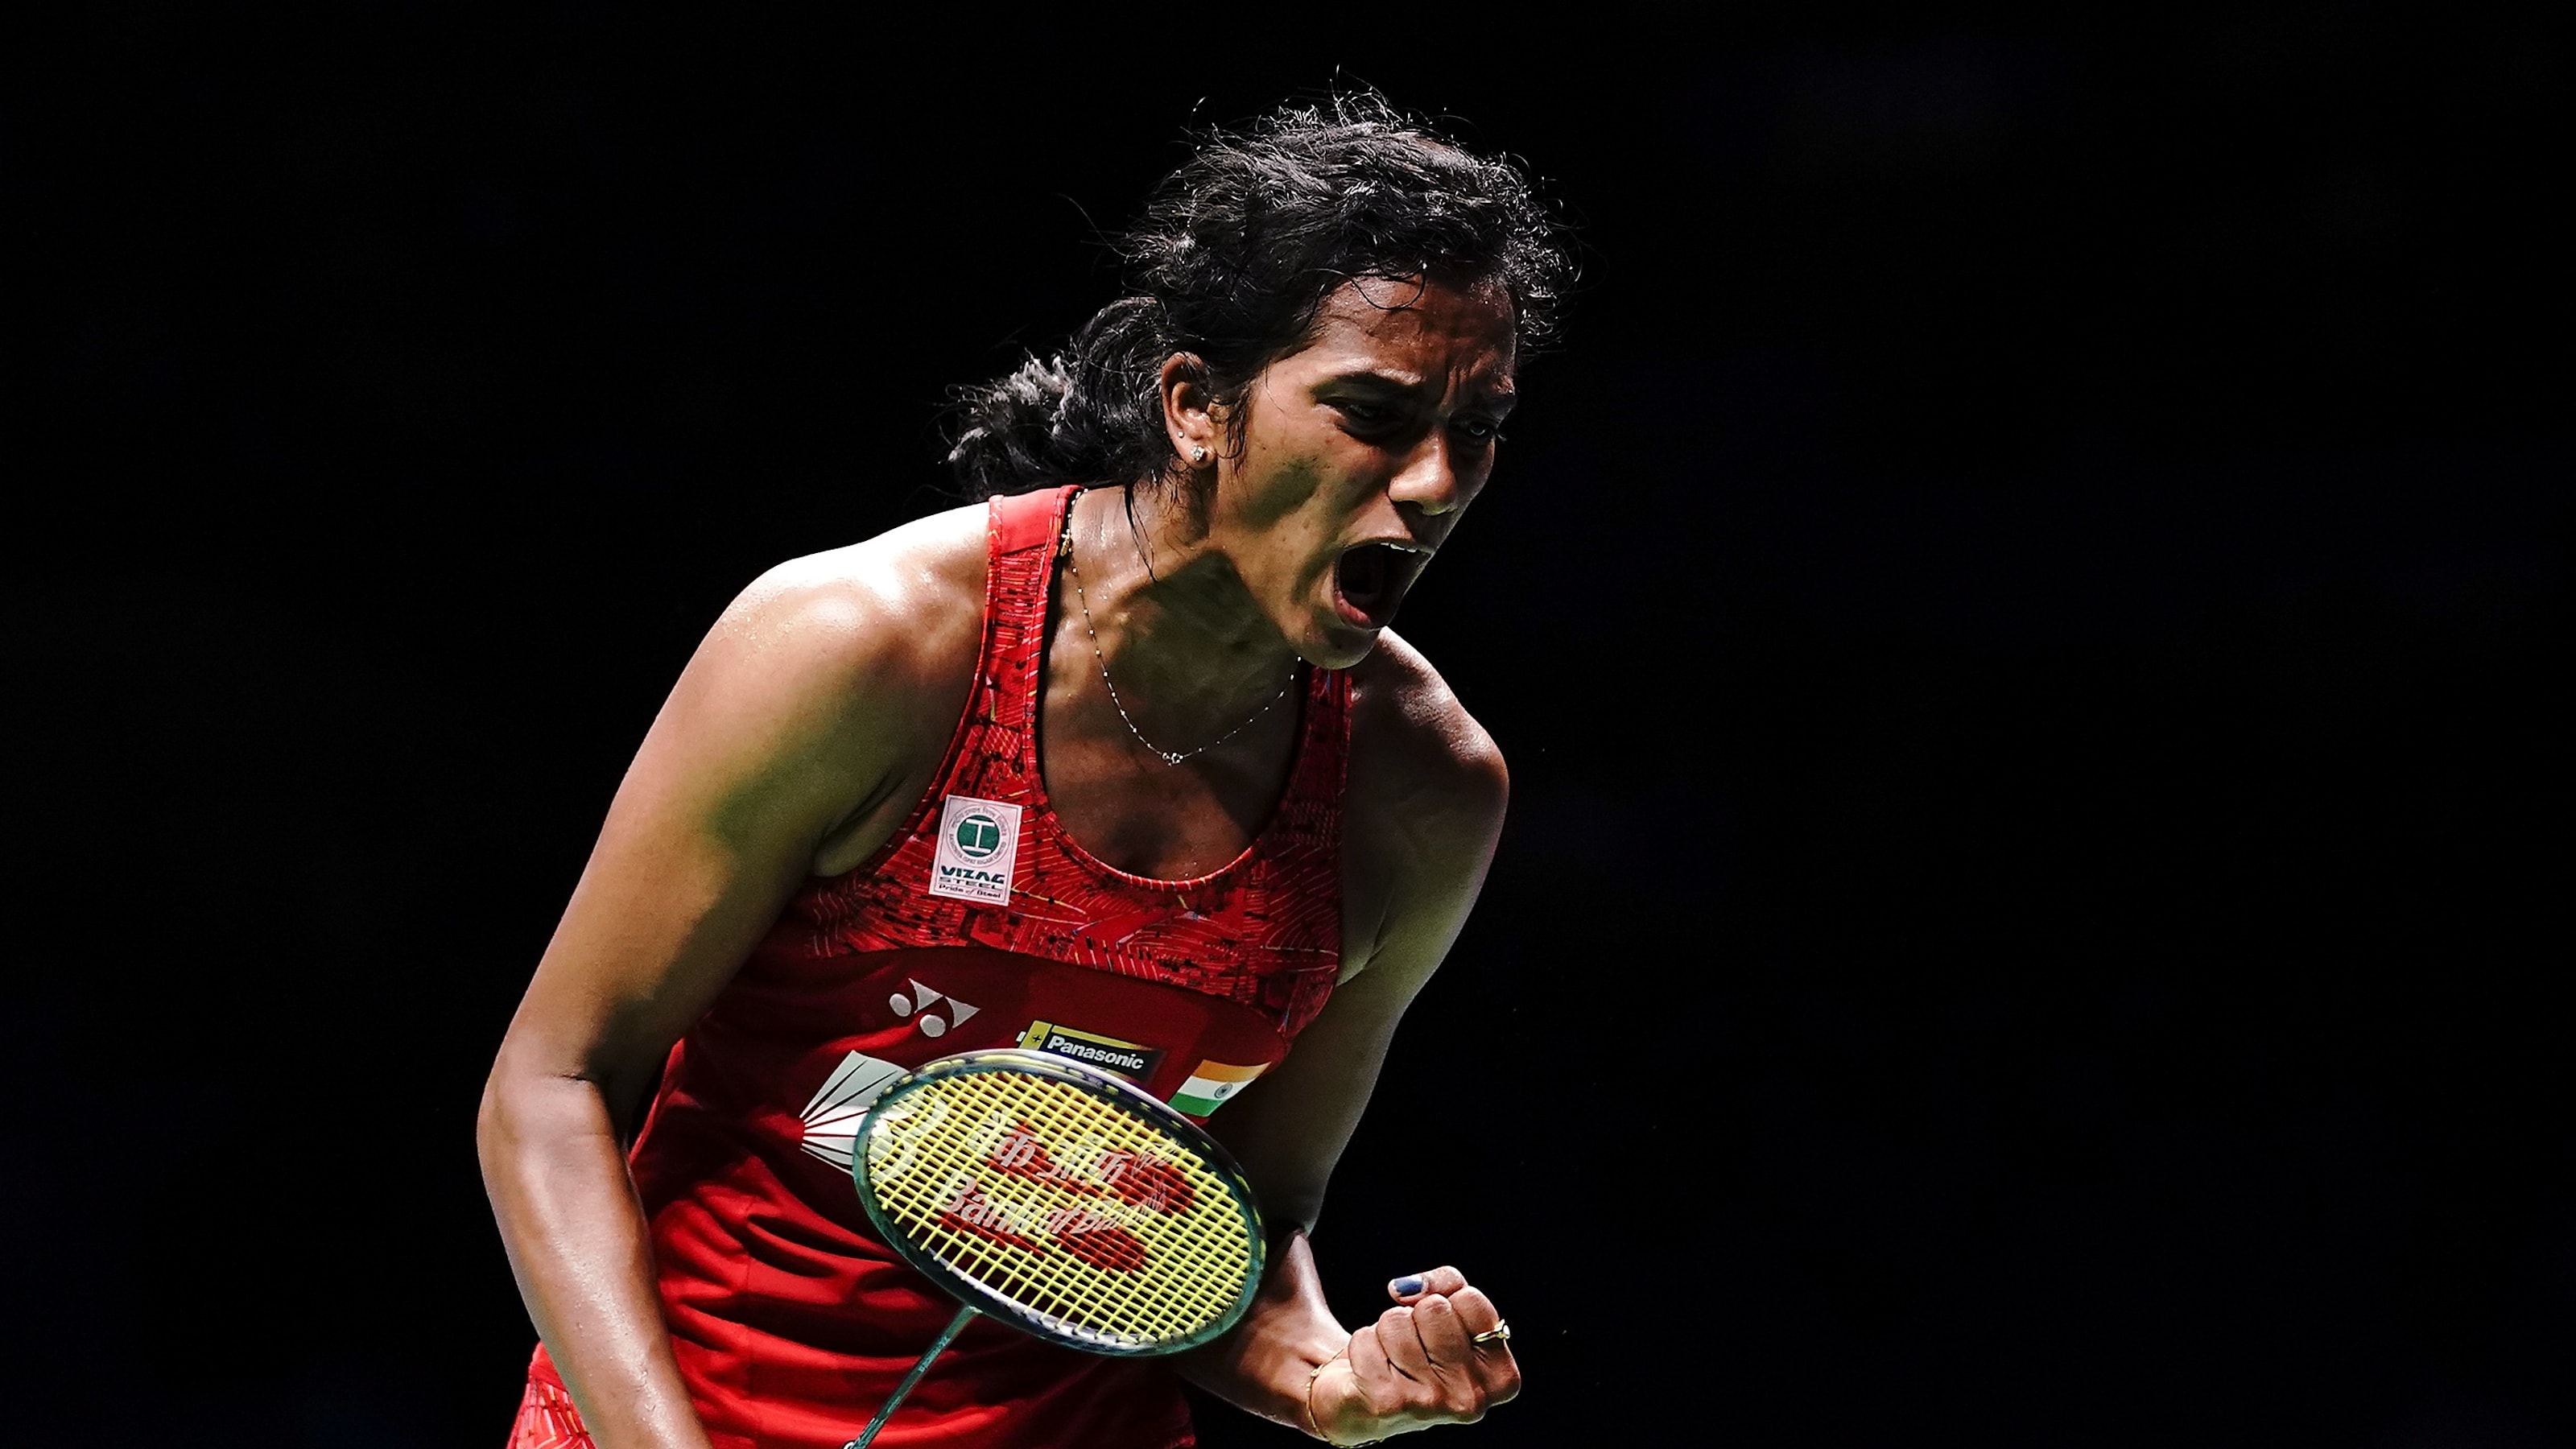 Being world champion can help me win gold at Tokyo: PV Sindhu